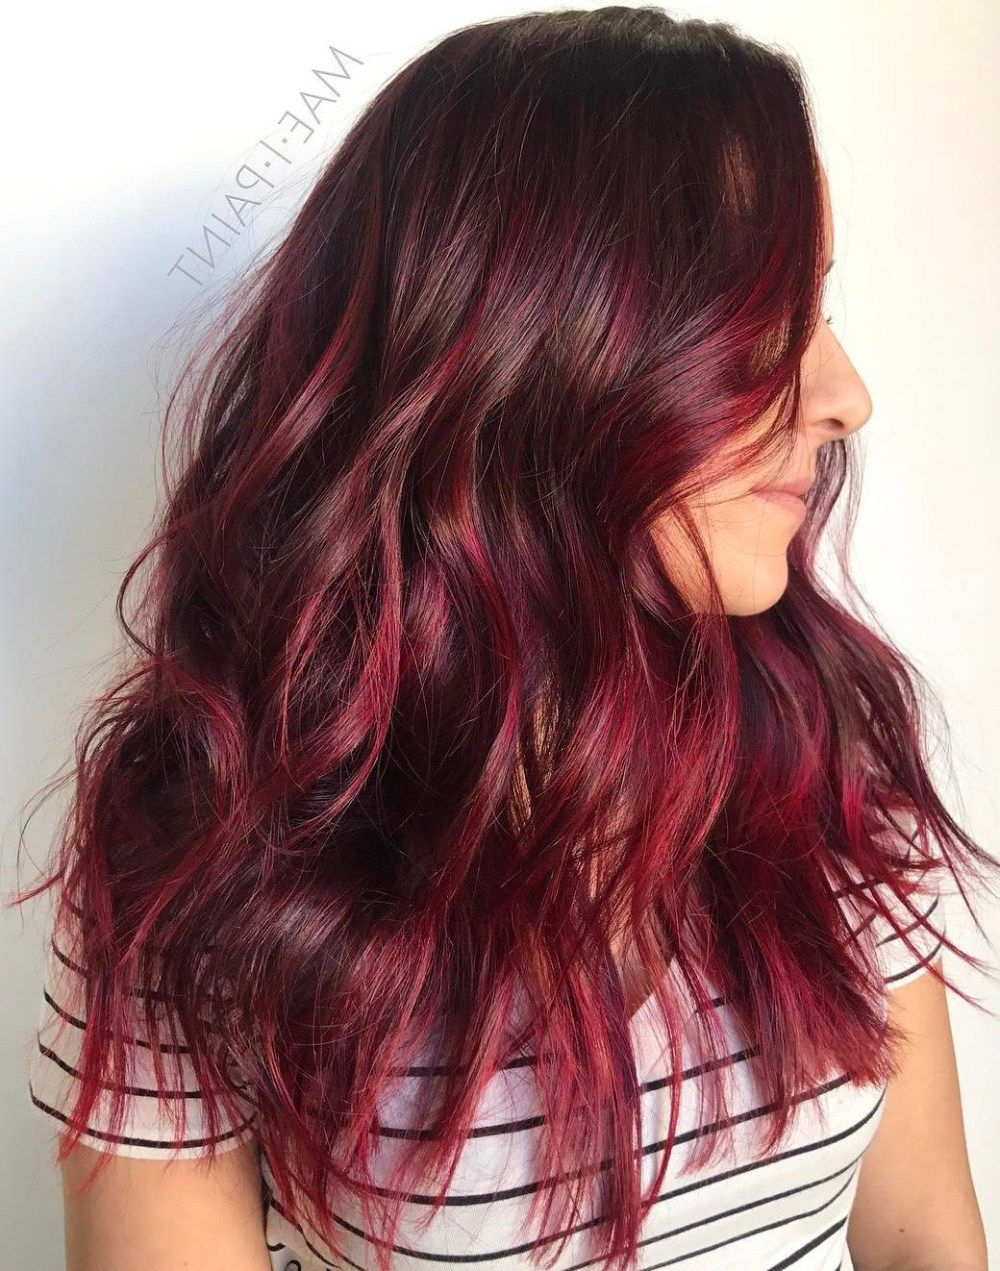 45 Shades Of Burgundy Hair: Dark Burgundy, Maroon, Burgundy Within Vibrant Burgundy Shag Haircuts (View 5 of 20)